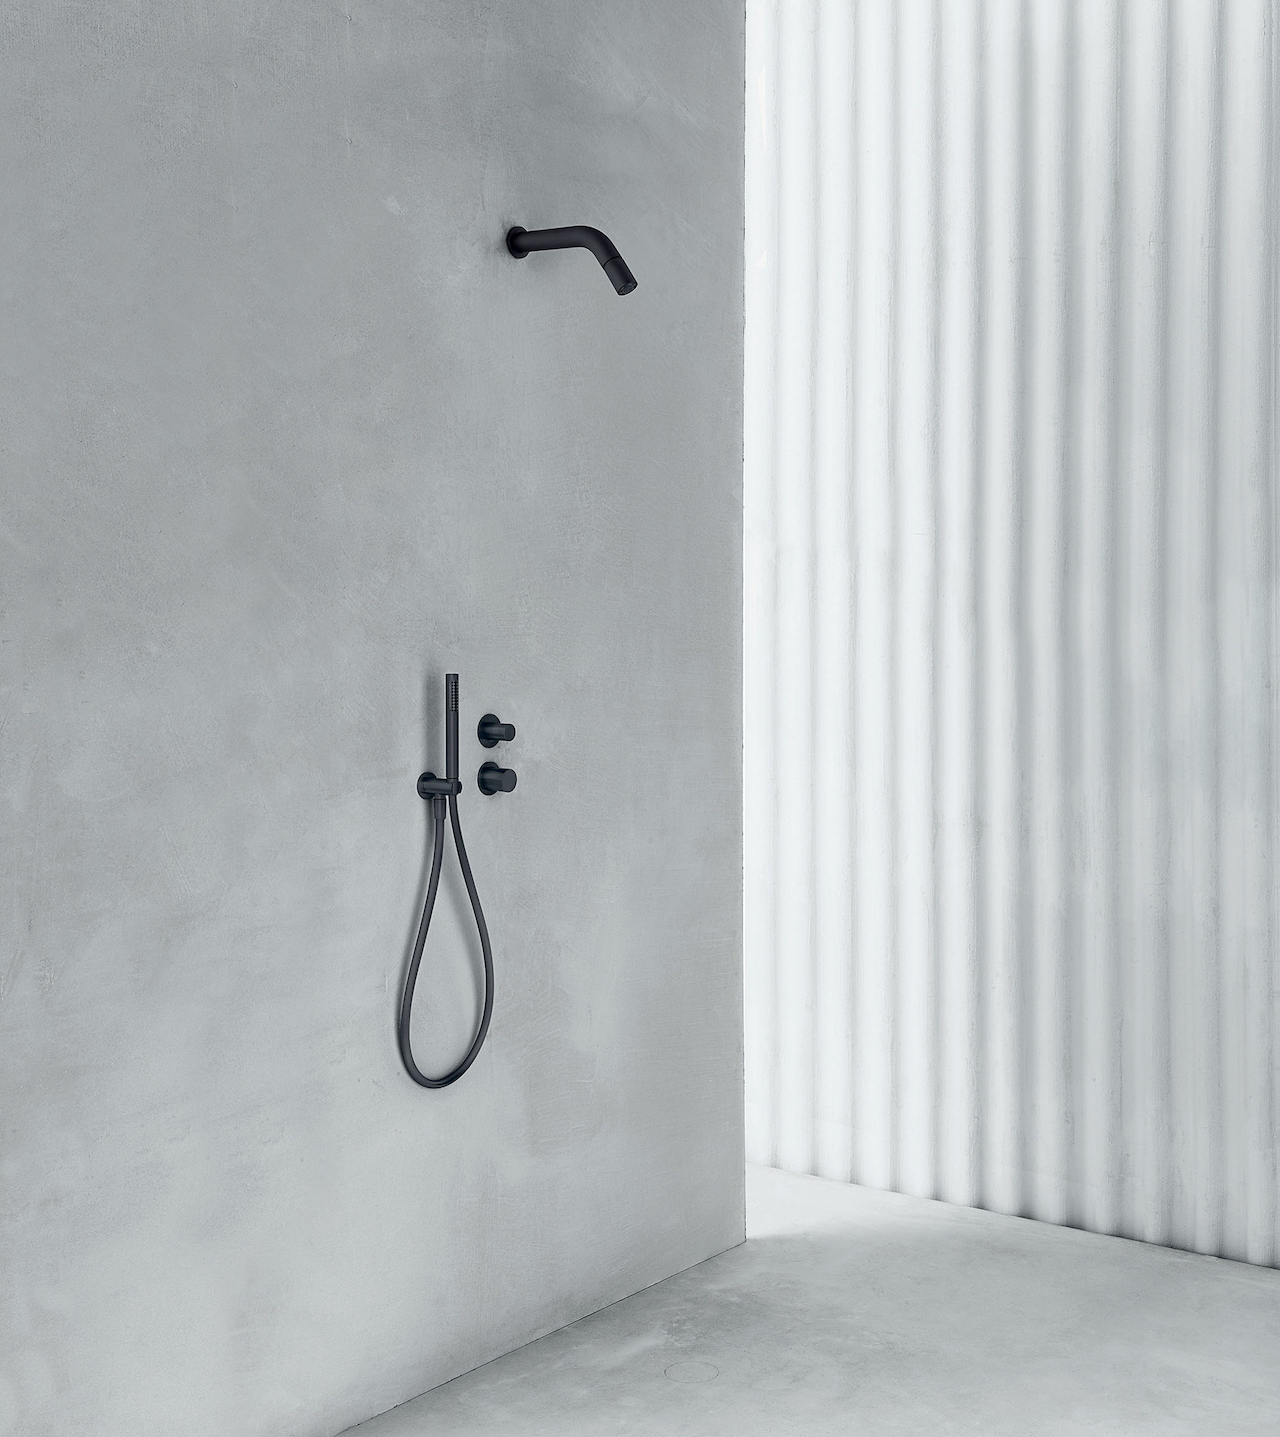 Showerhead AA/27 Aboutwater, design Michael Anastassiades 2020, Boffi and Fantini